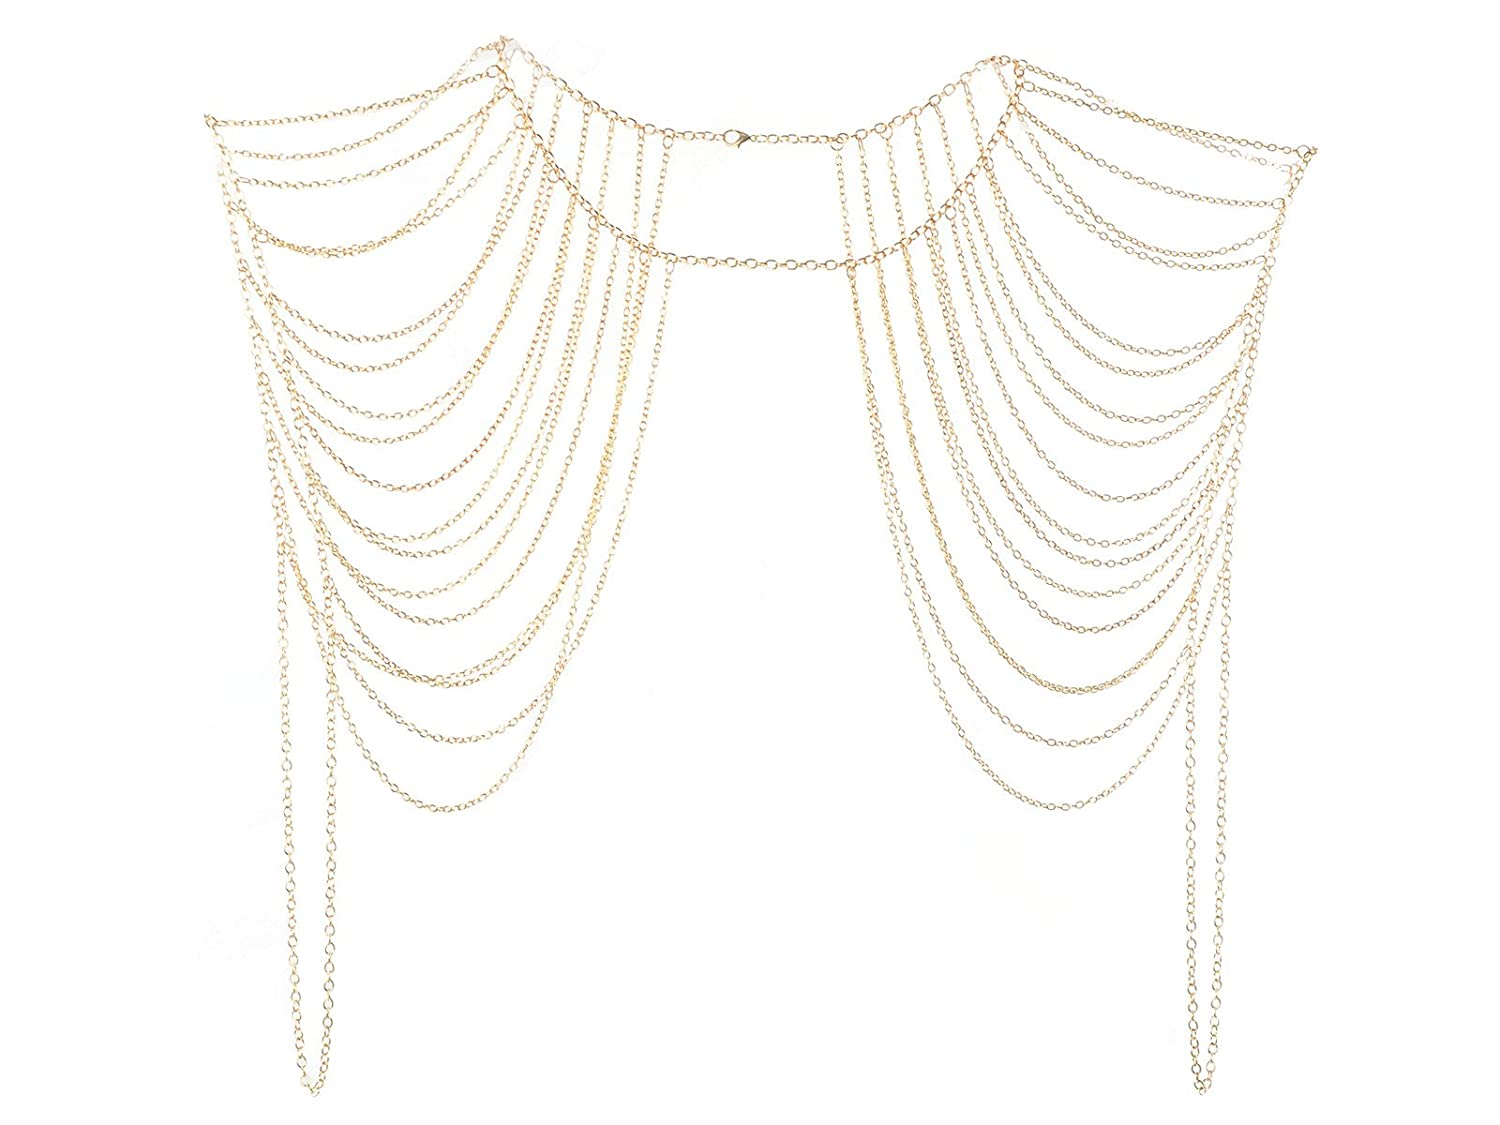 Imixlot Tassels Link Body Shoulder Crossover Harness Waist Belly Body Chain Ltd GE10019